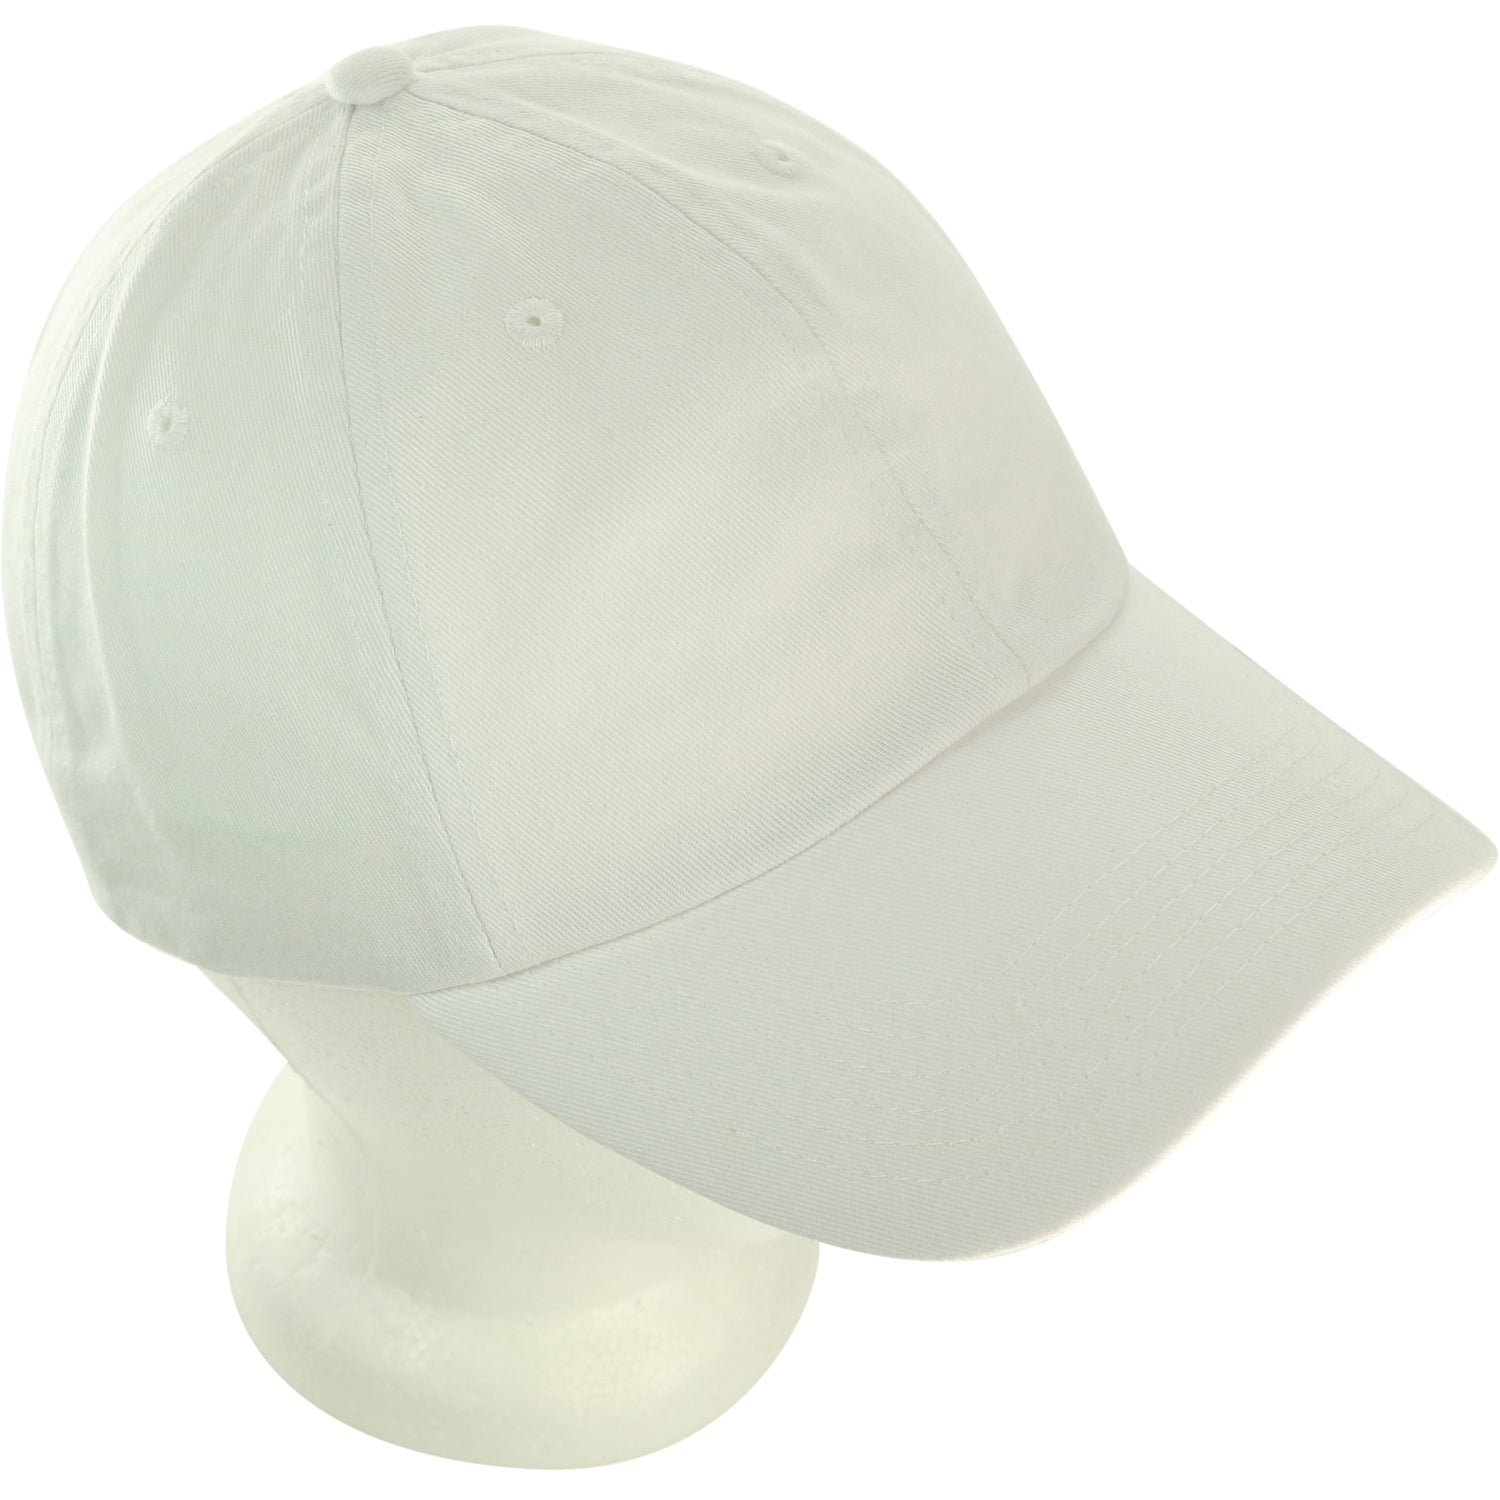 Promotional Valucap Biowashed Unstructured Caps With Custom Logo